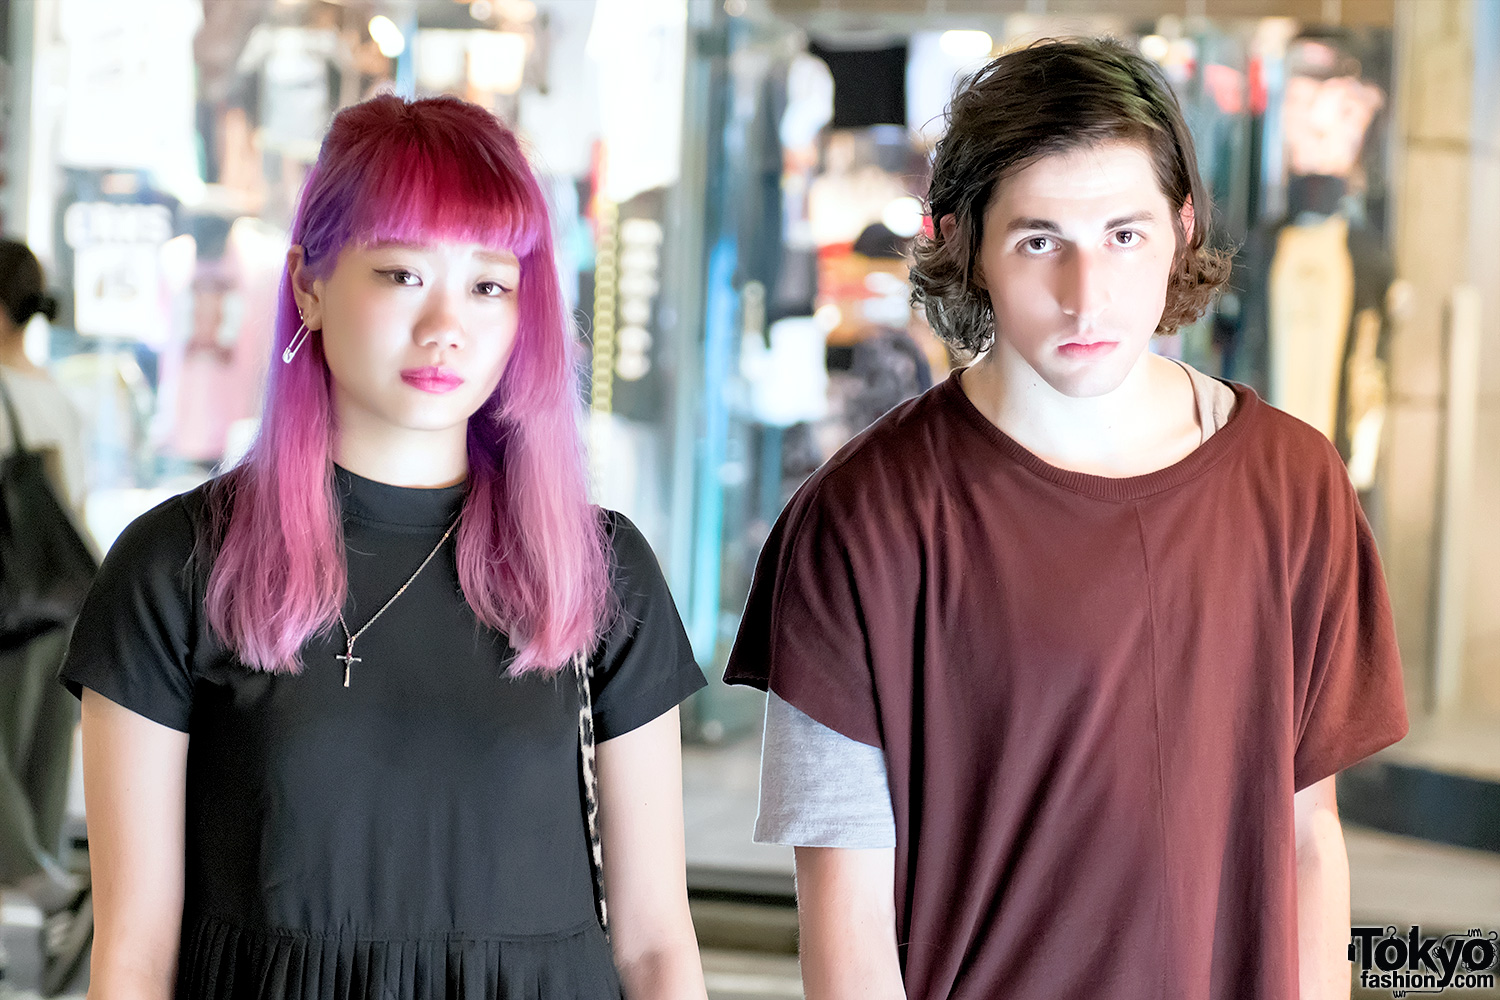 Musician Porter Robinson & Japanese Model Elleanor on the Street in Harajuku